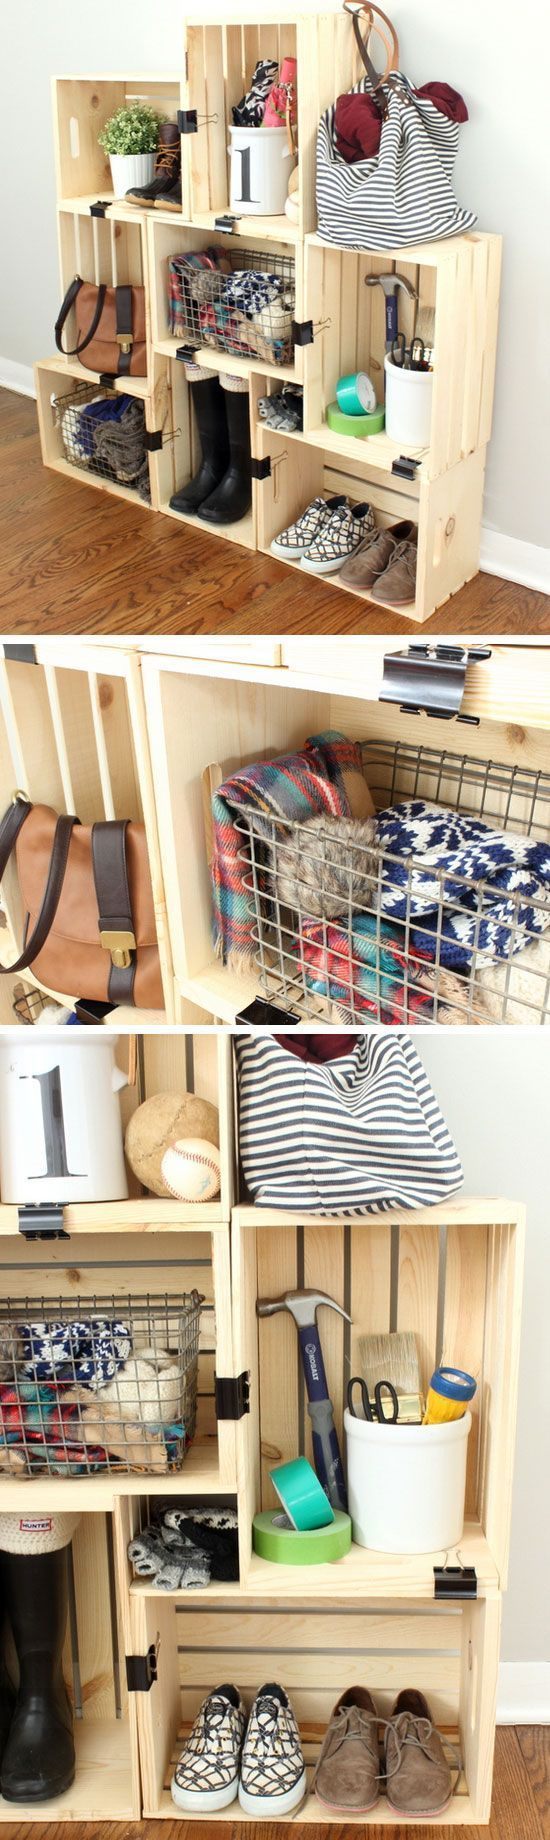 Best Apartment Hacks Ideas On Pinterest Moving Hacks Diy